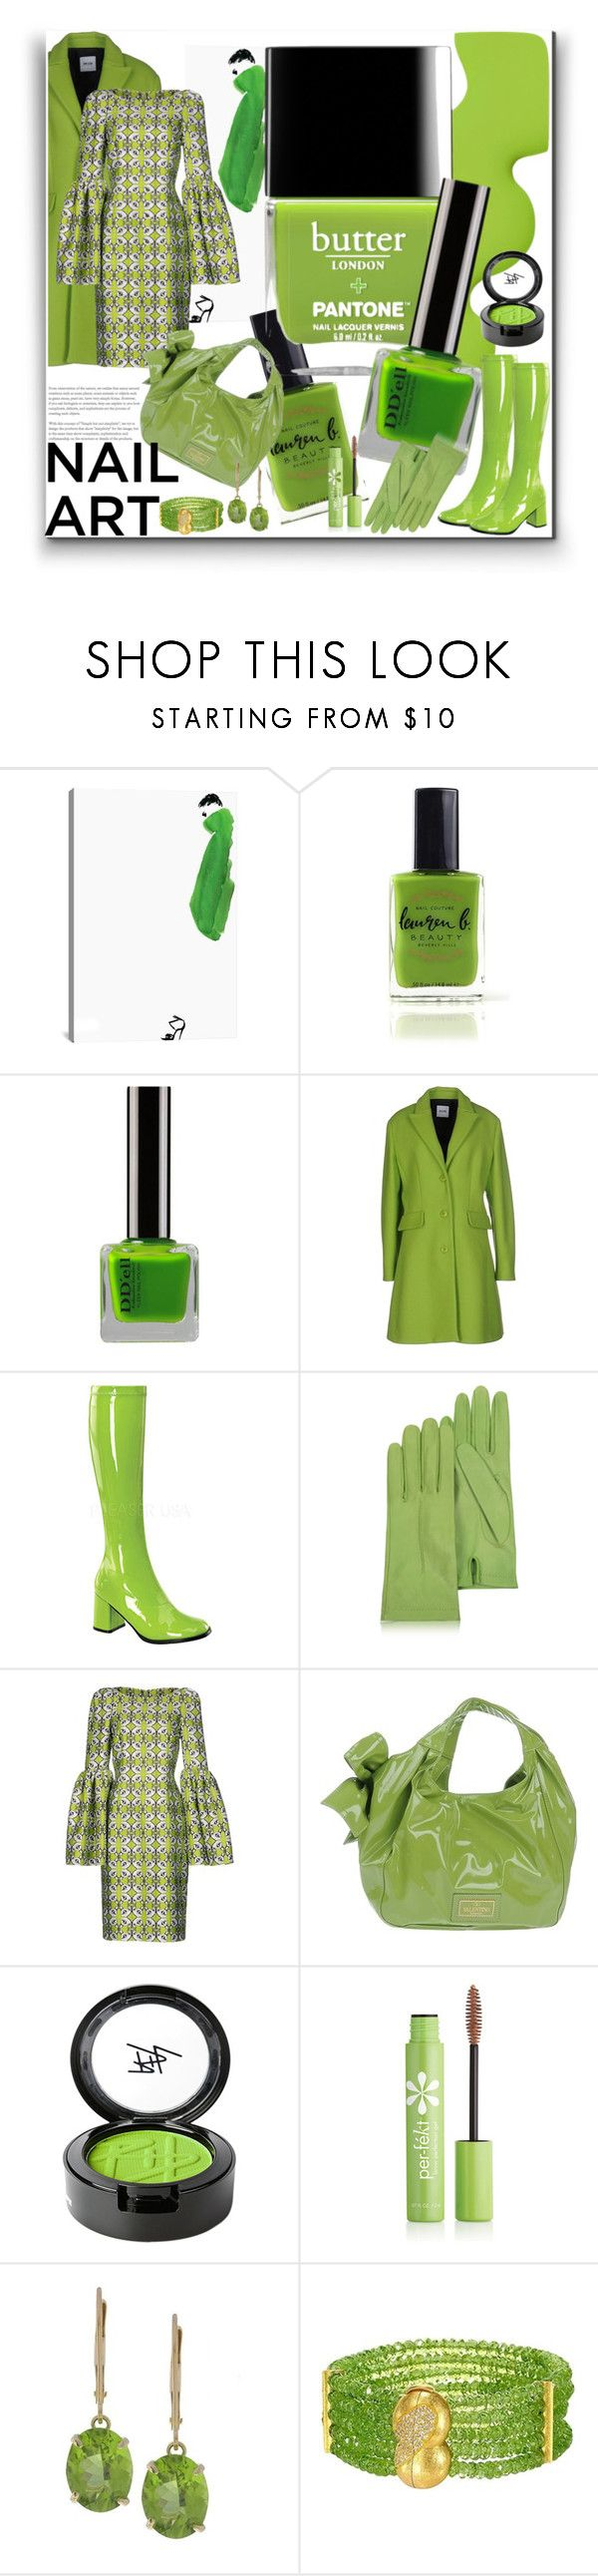 """""""Nail Edit"""" by marionmeyer ❤ liked on Polyvore featuring beauty, iCanvas, Lauren B. Beauty, Butter London, Moschino Cheap & Chic, Funtasma, Forzieri, Thomas Wylde, Valentino and Beauty Is Life"""